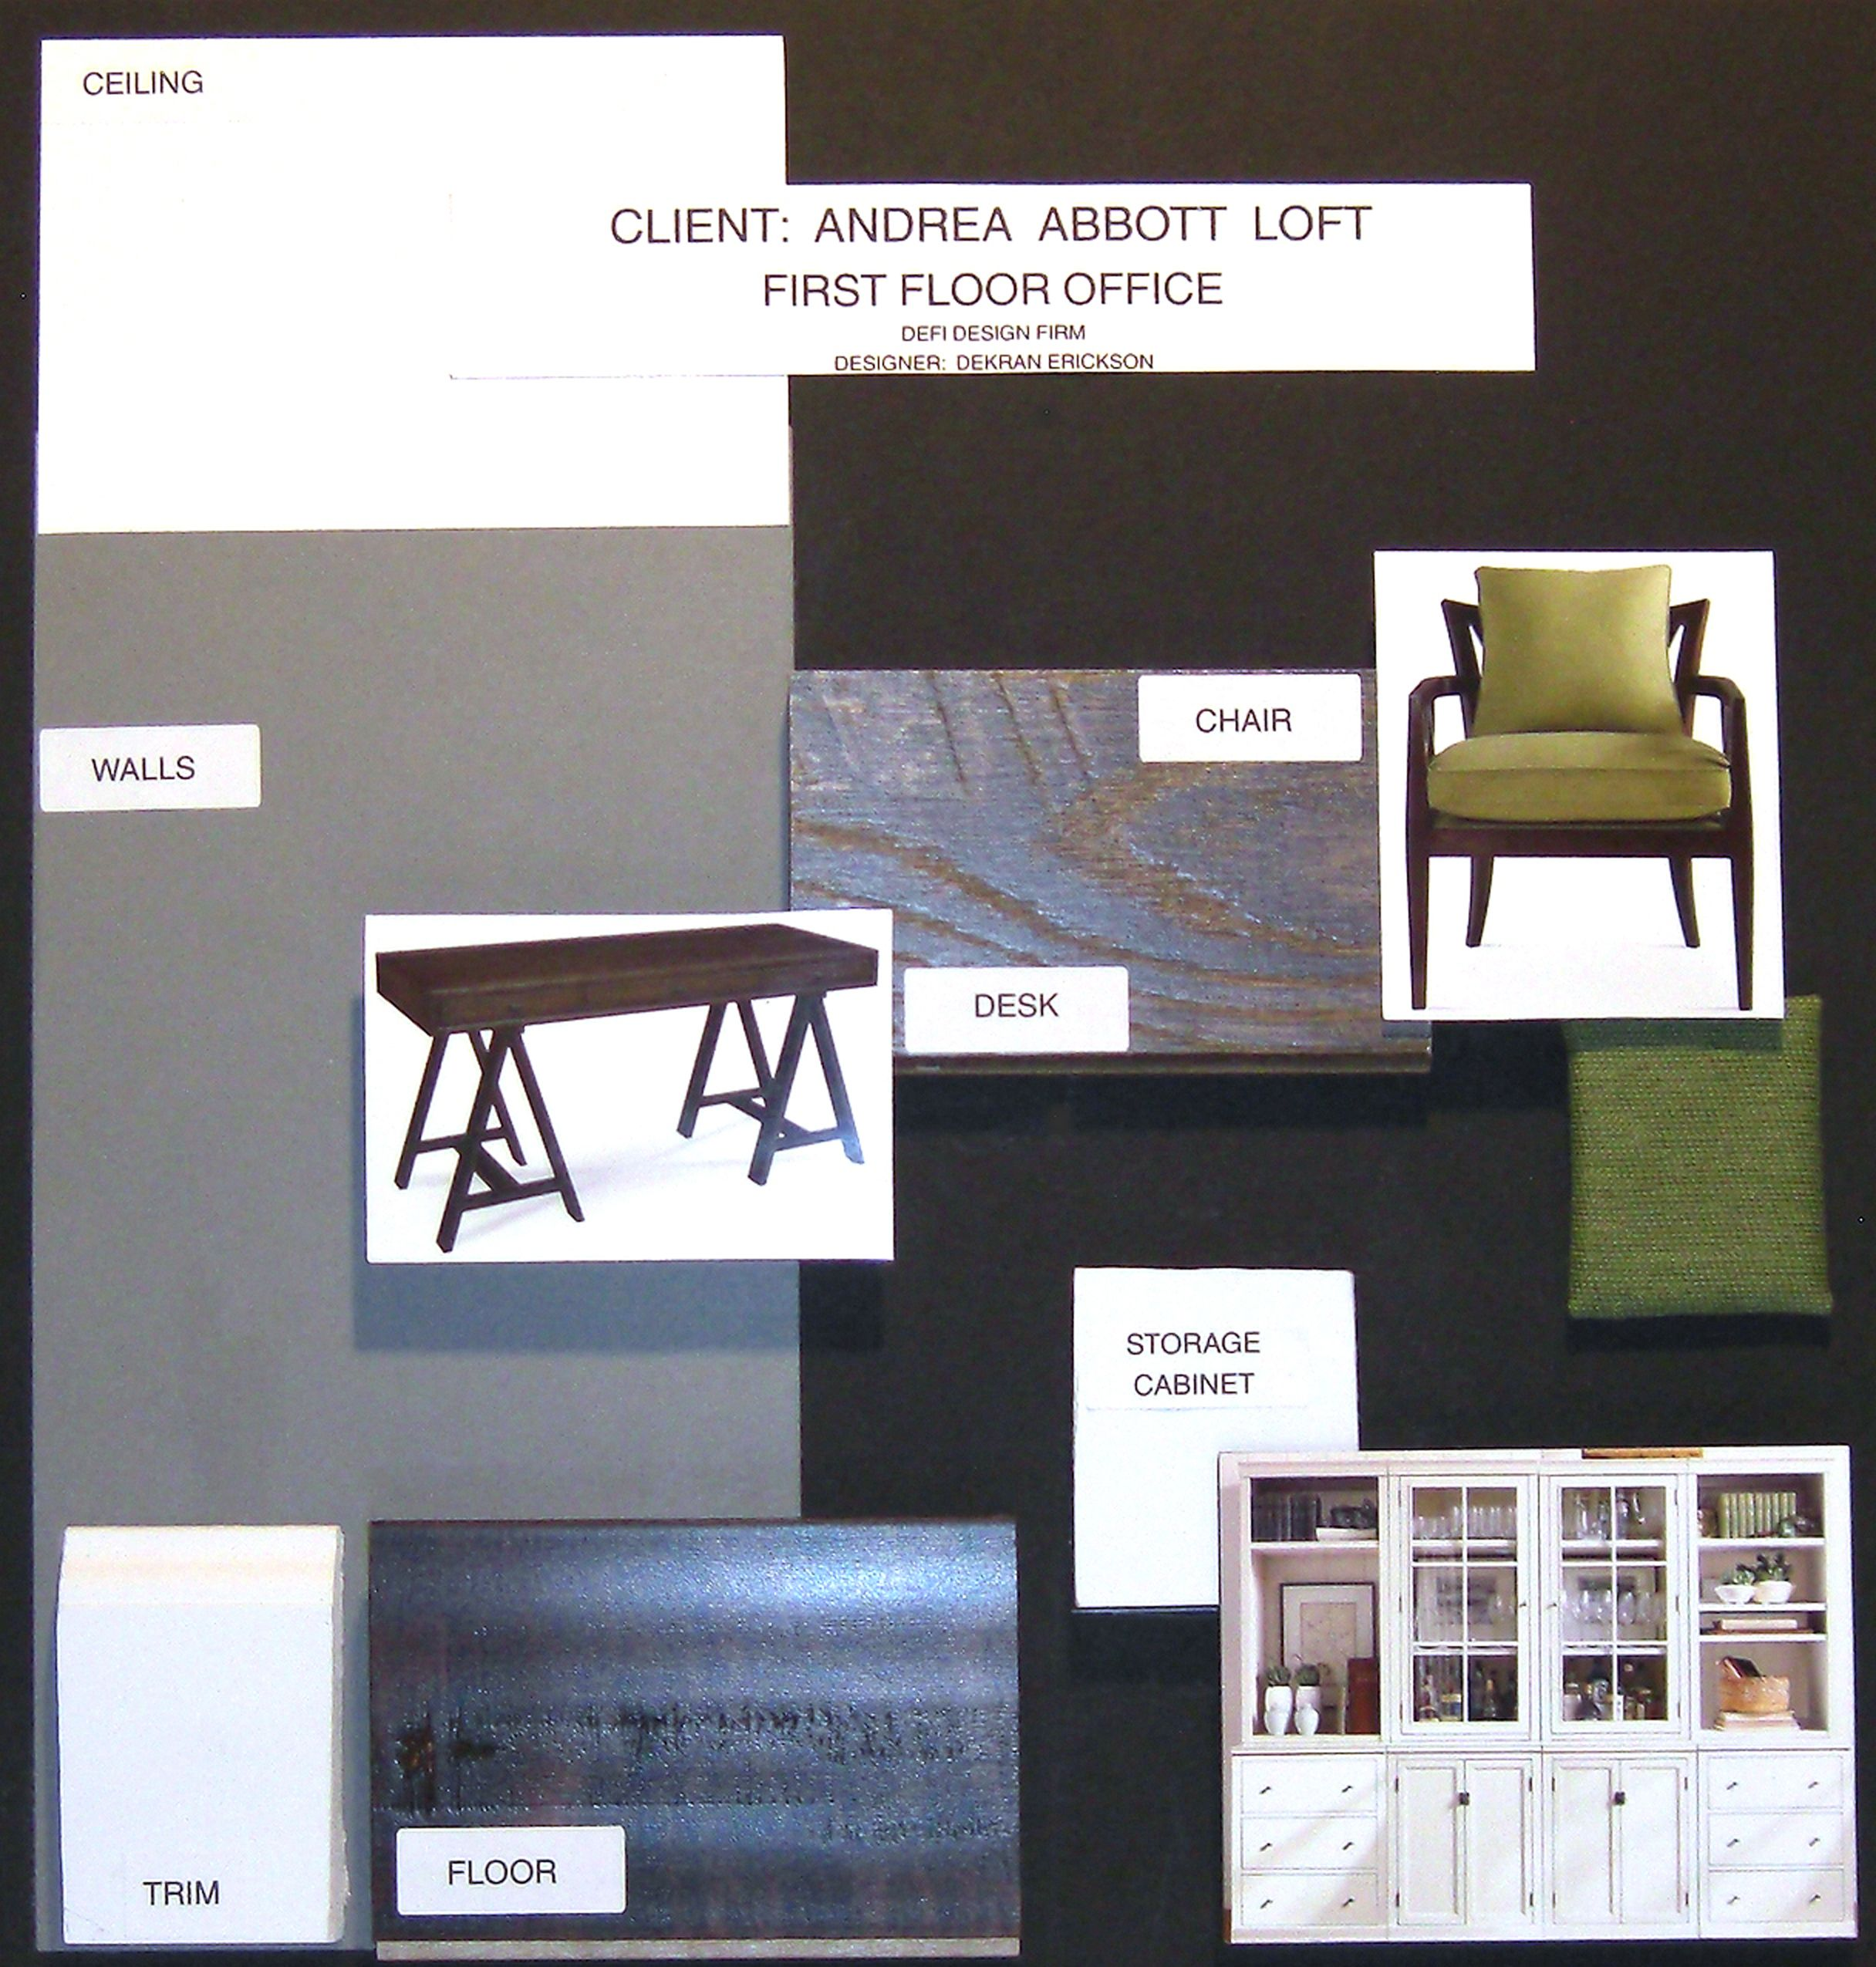 Home Office Layout Examples: Material Sample Board For A Home Office